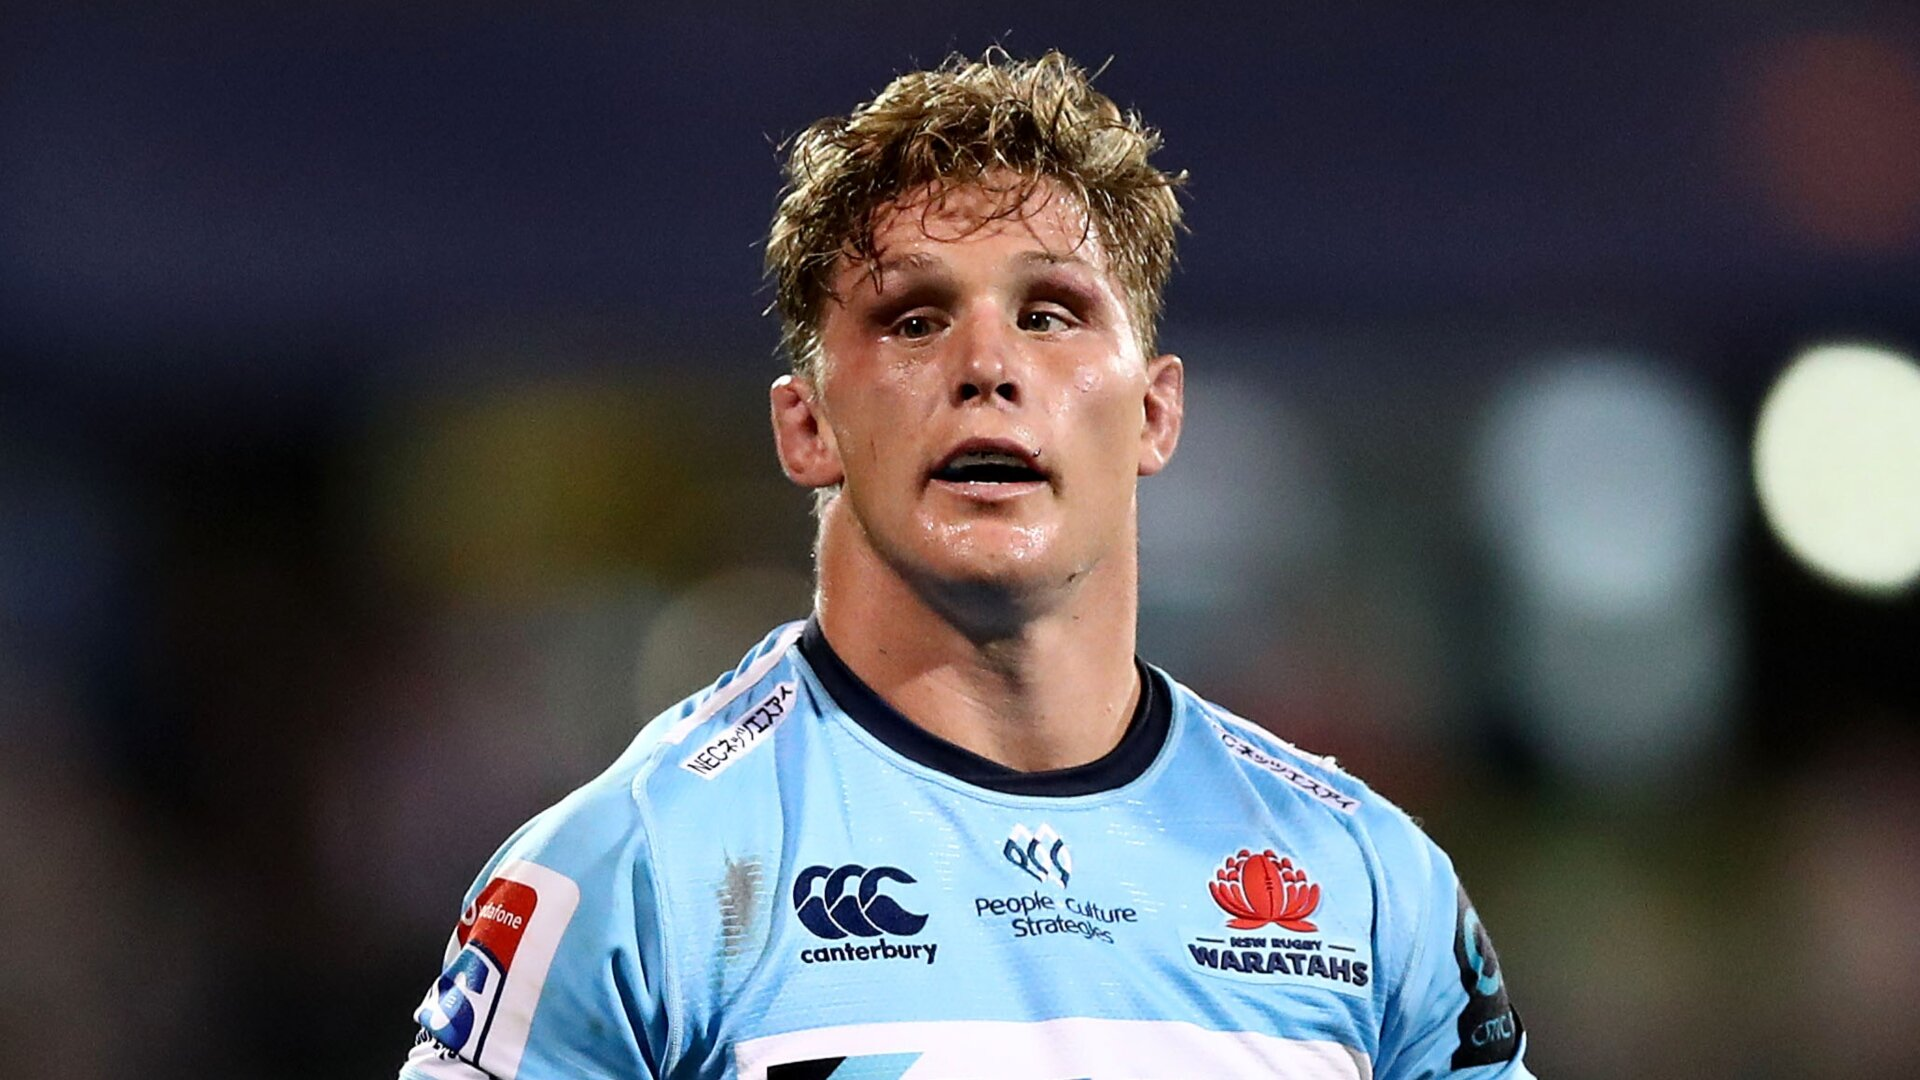 Rugby league convert poised for Waratahs debut while Rob Penney isn't ruling out Michael Hooper as captain